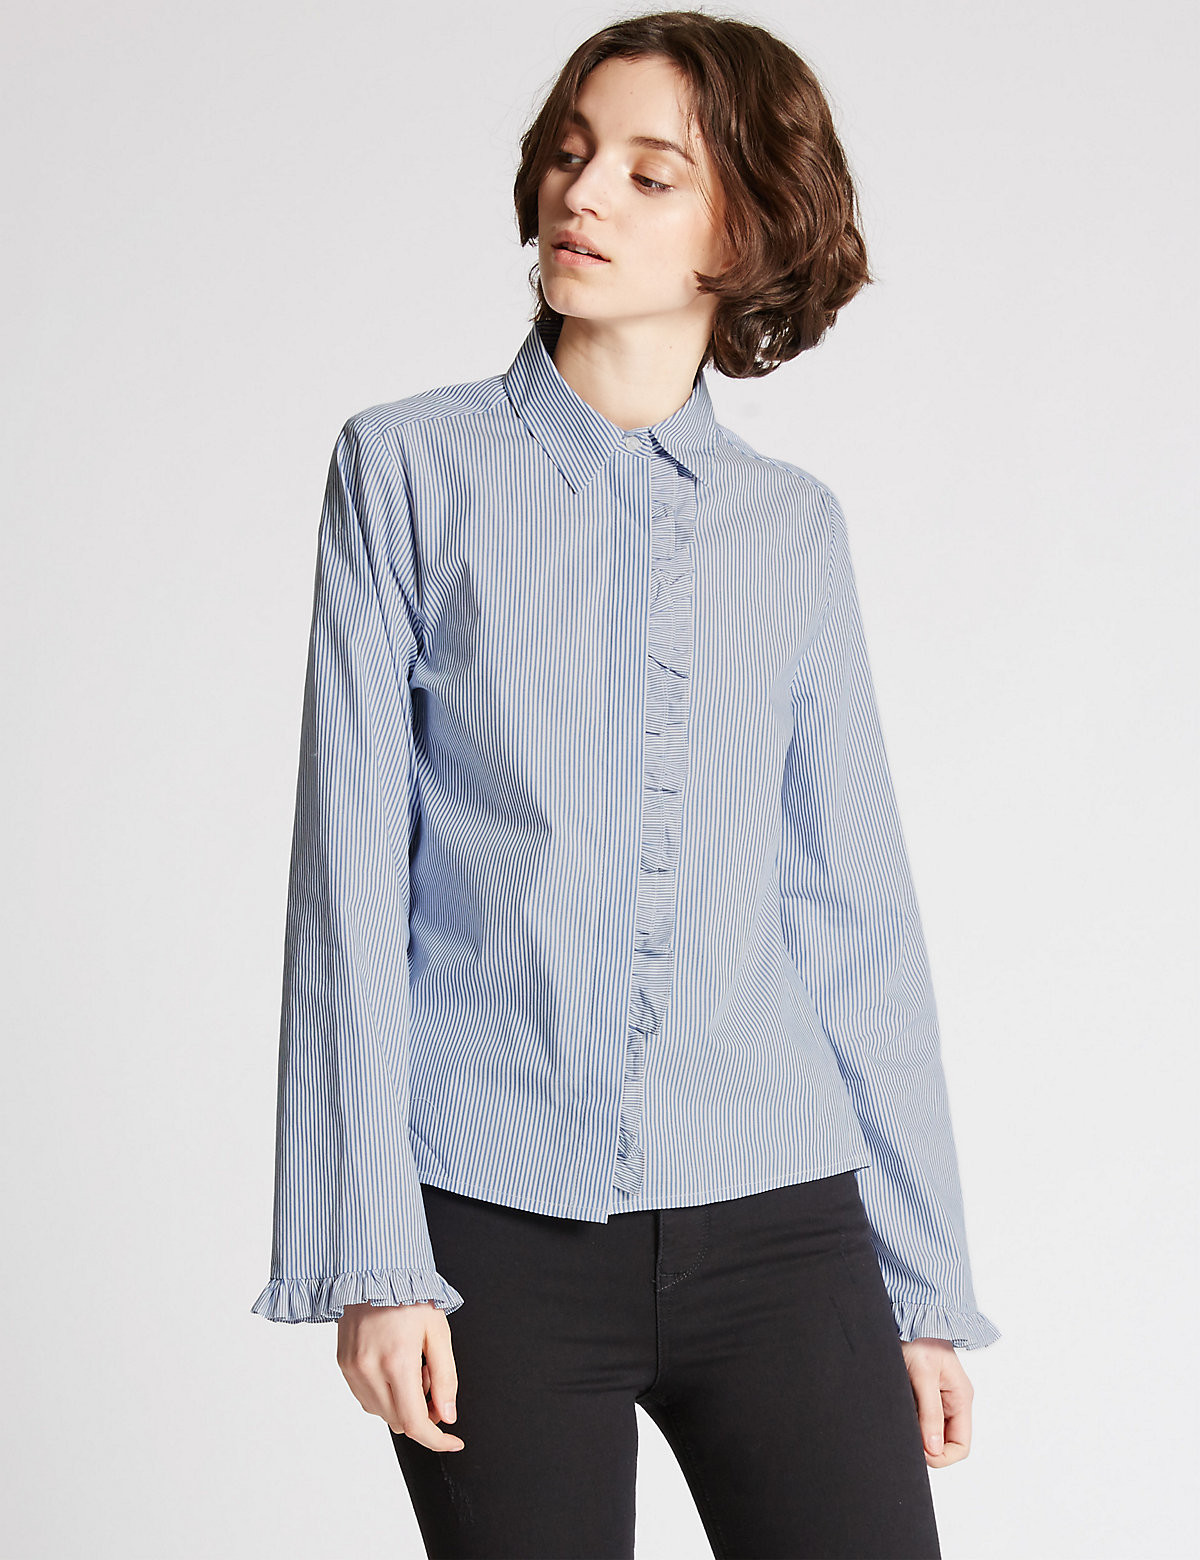 Limited Edition Pure Cotton Striped Ruffle Poplin Shirt Marks and Spencer P22510270